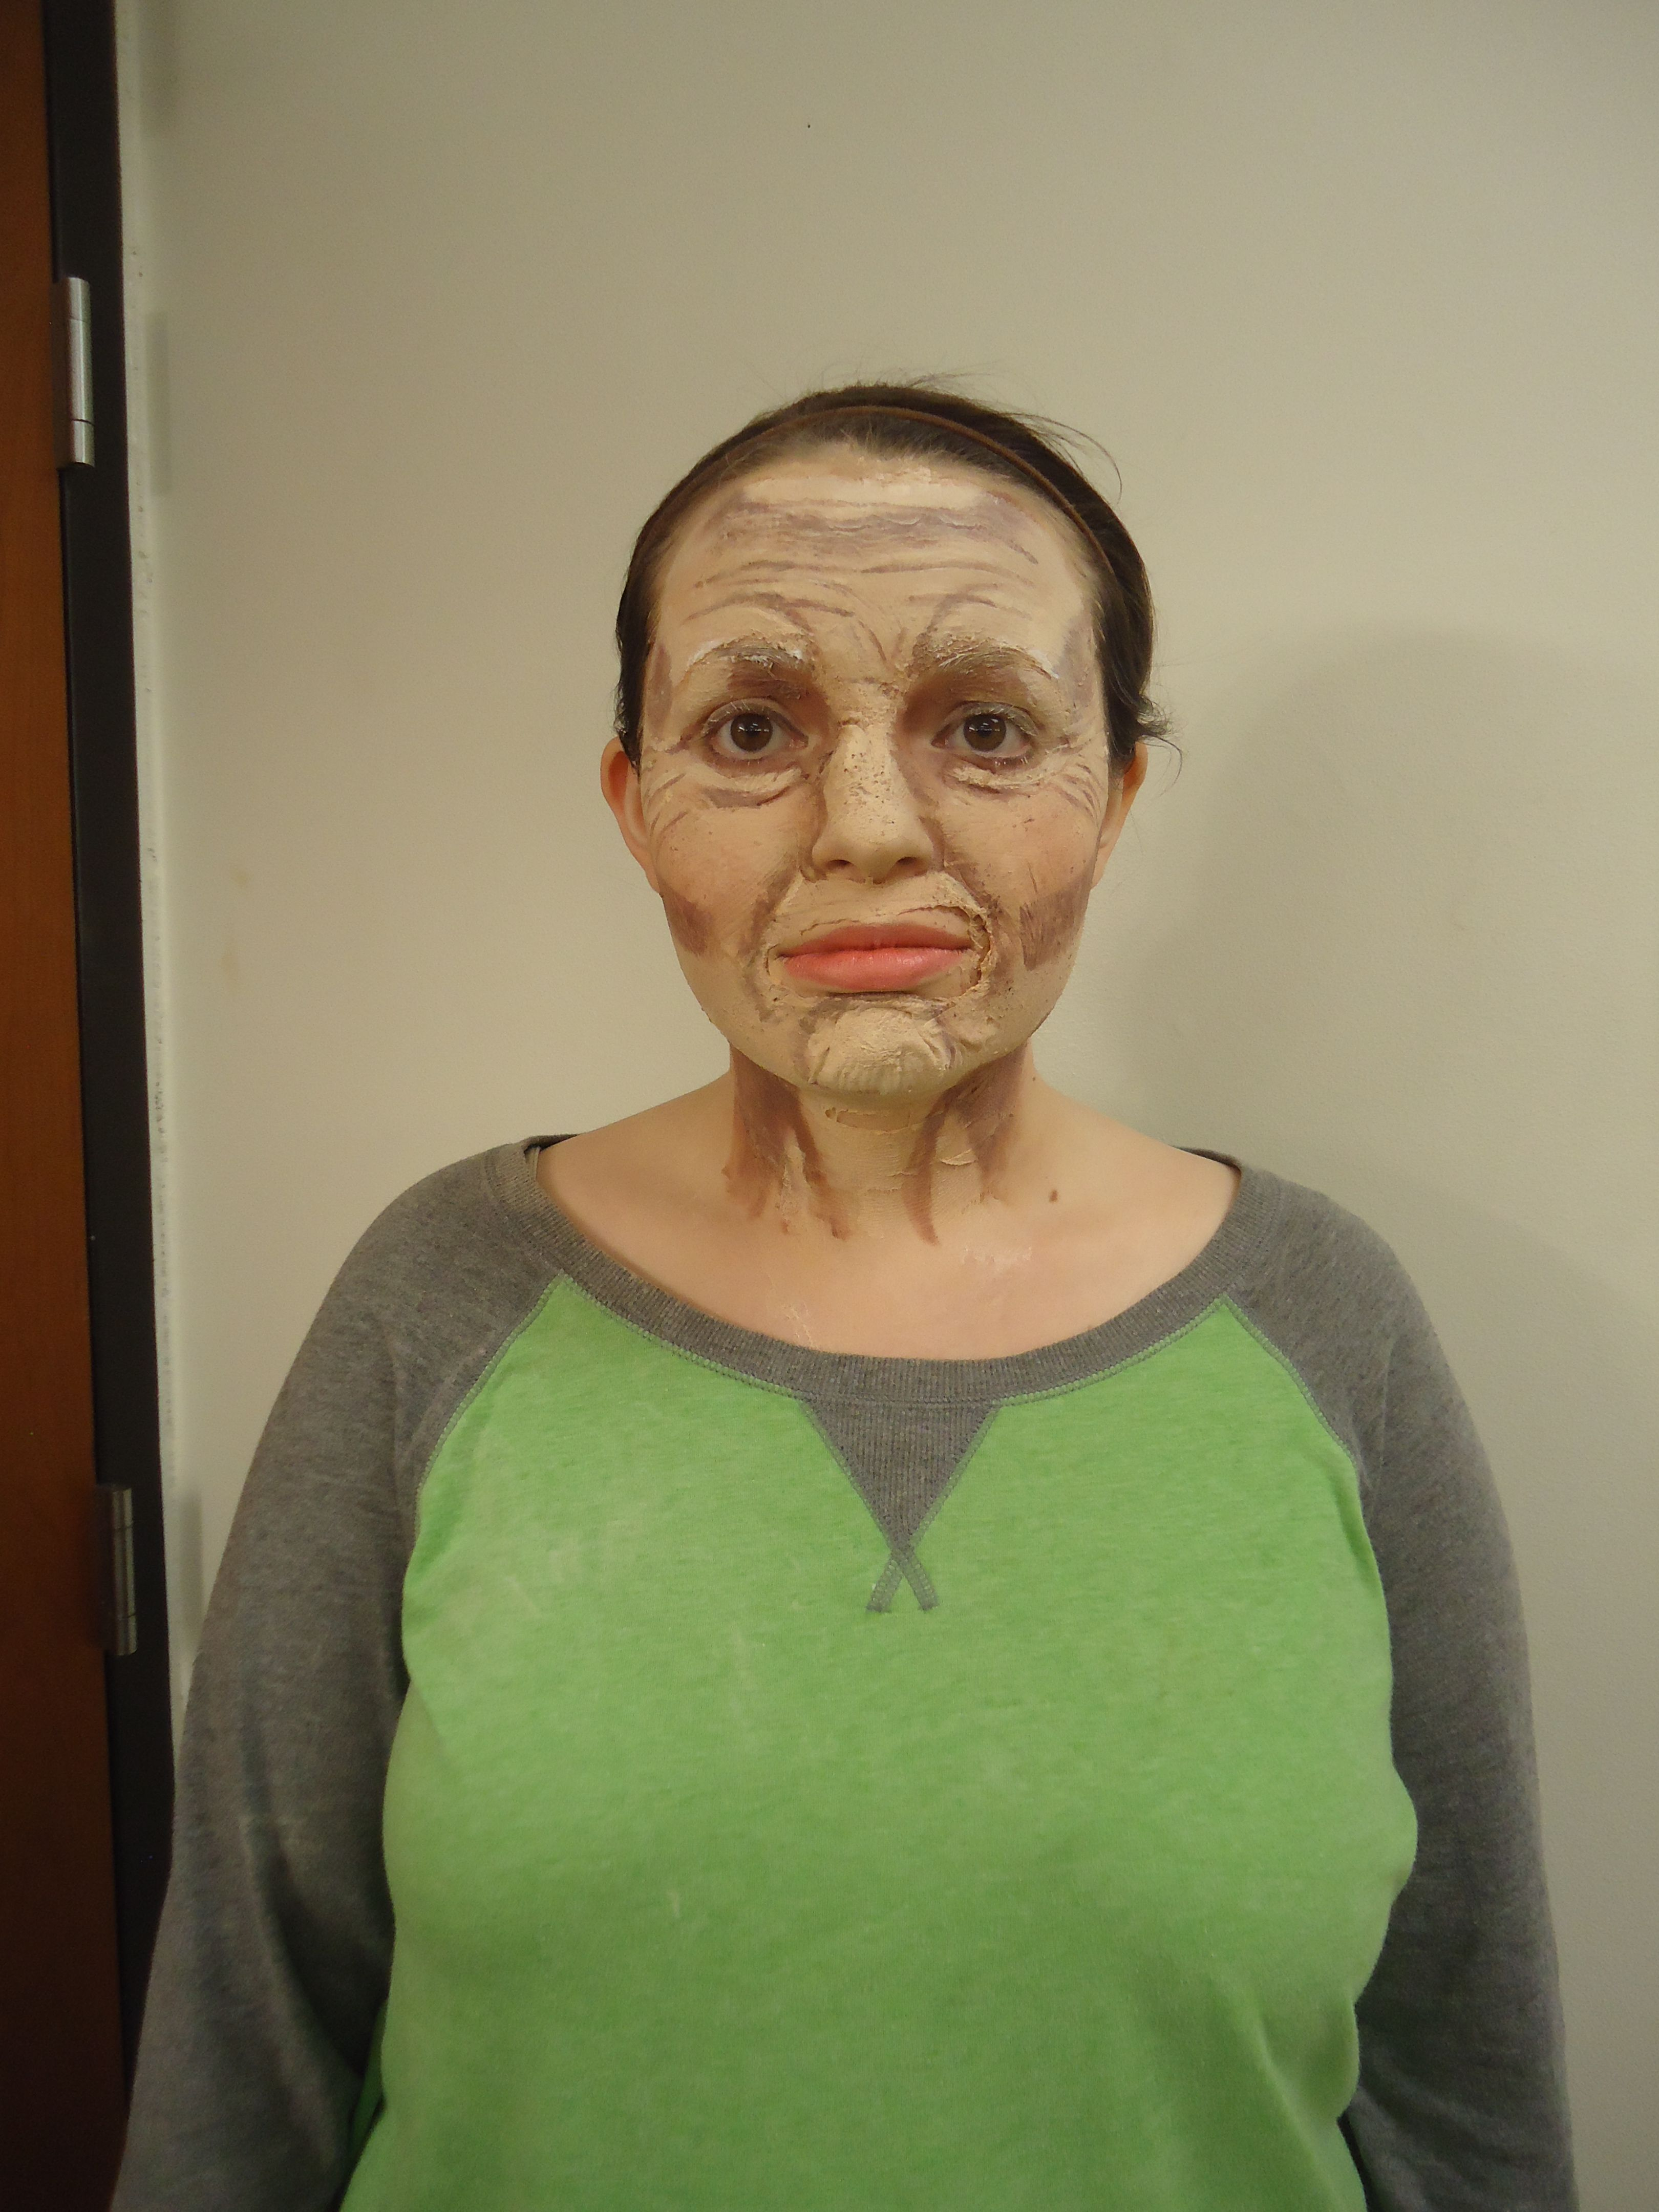 3D old age makeup designed and applied by me (Rachael Gibson